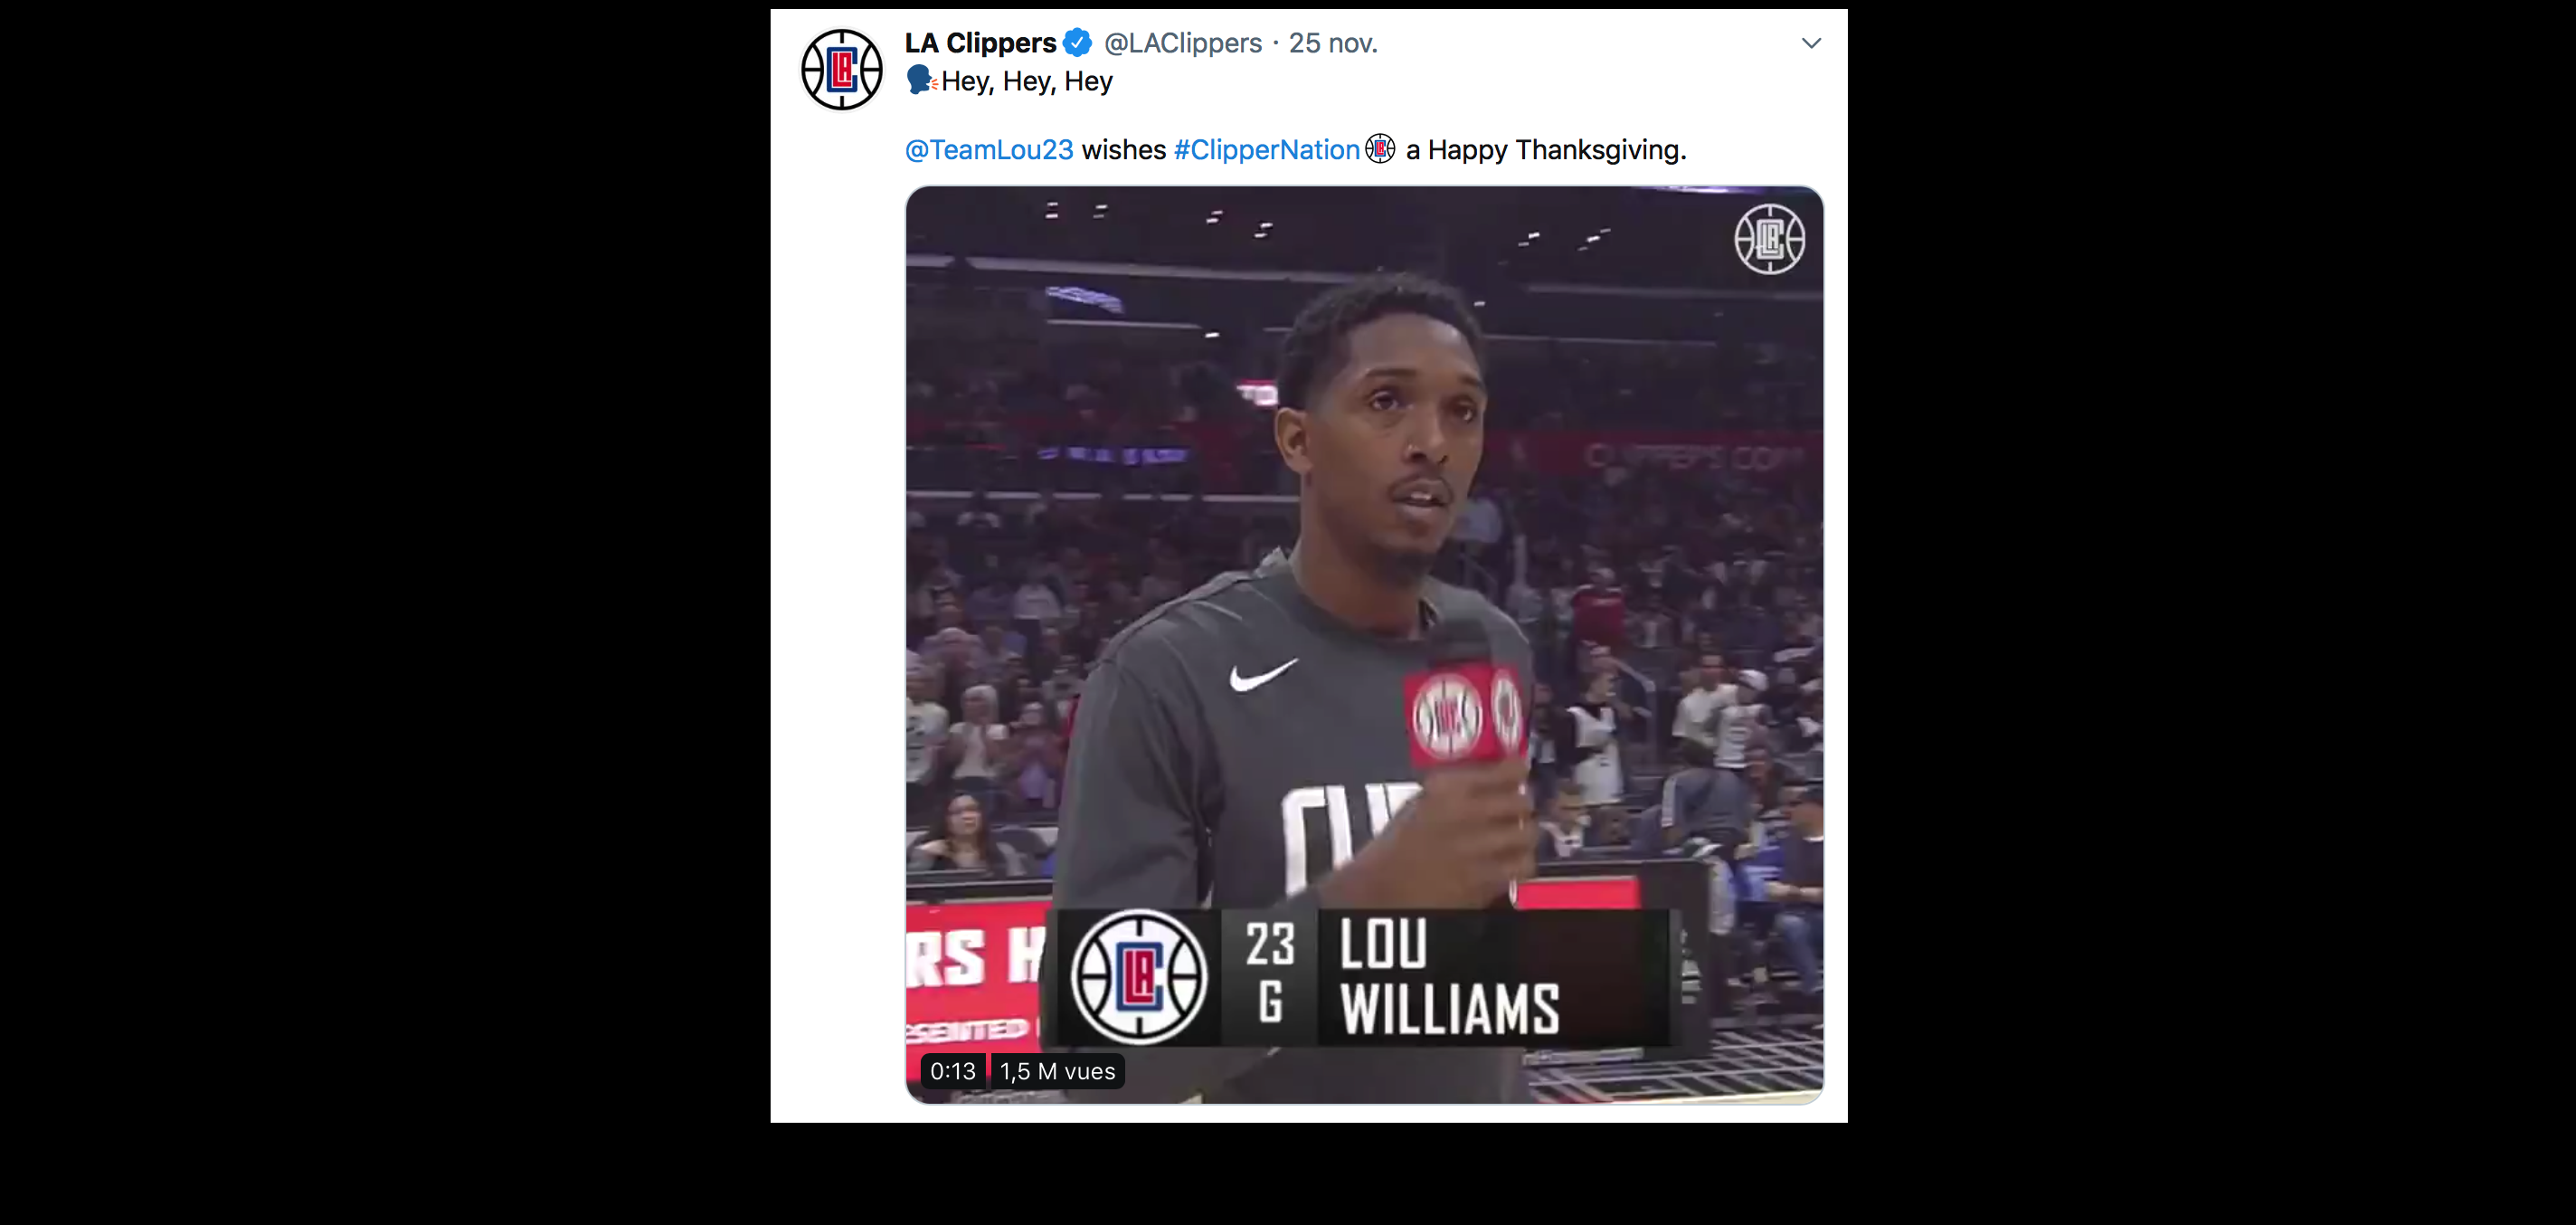 Lou Williams Hey Hey Hey